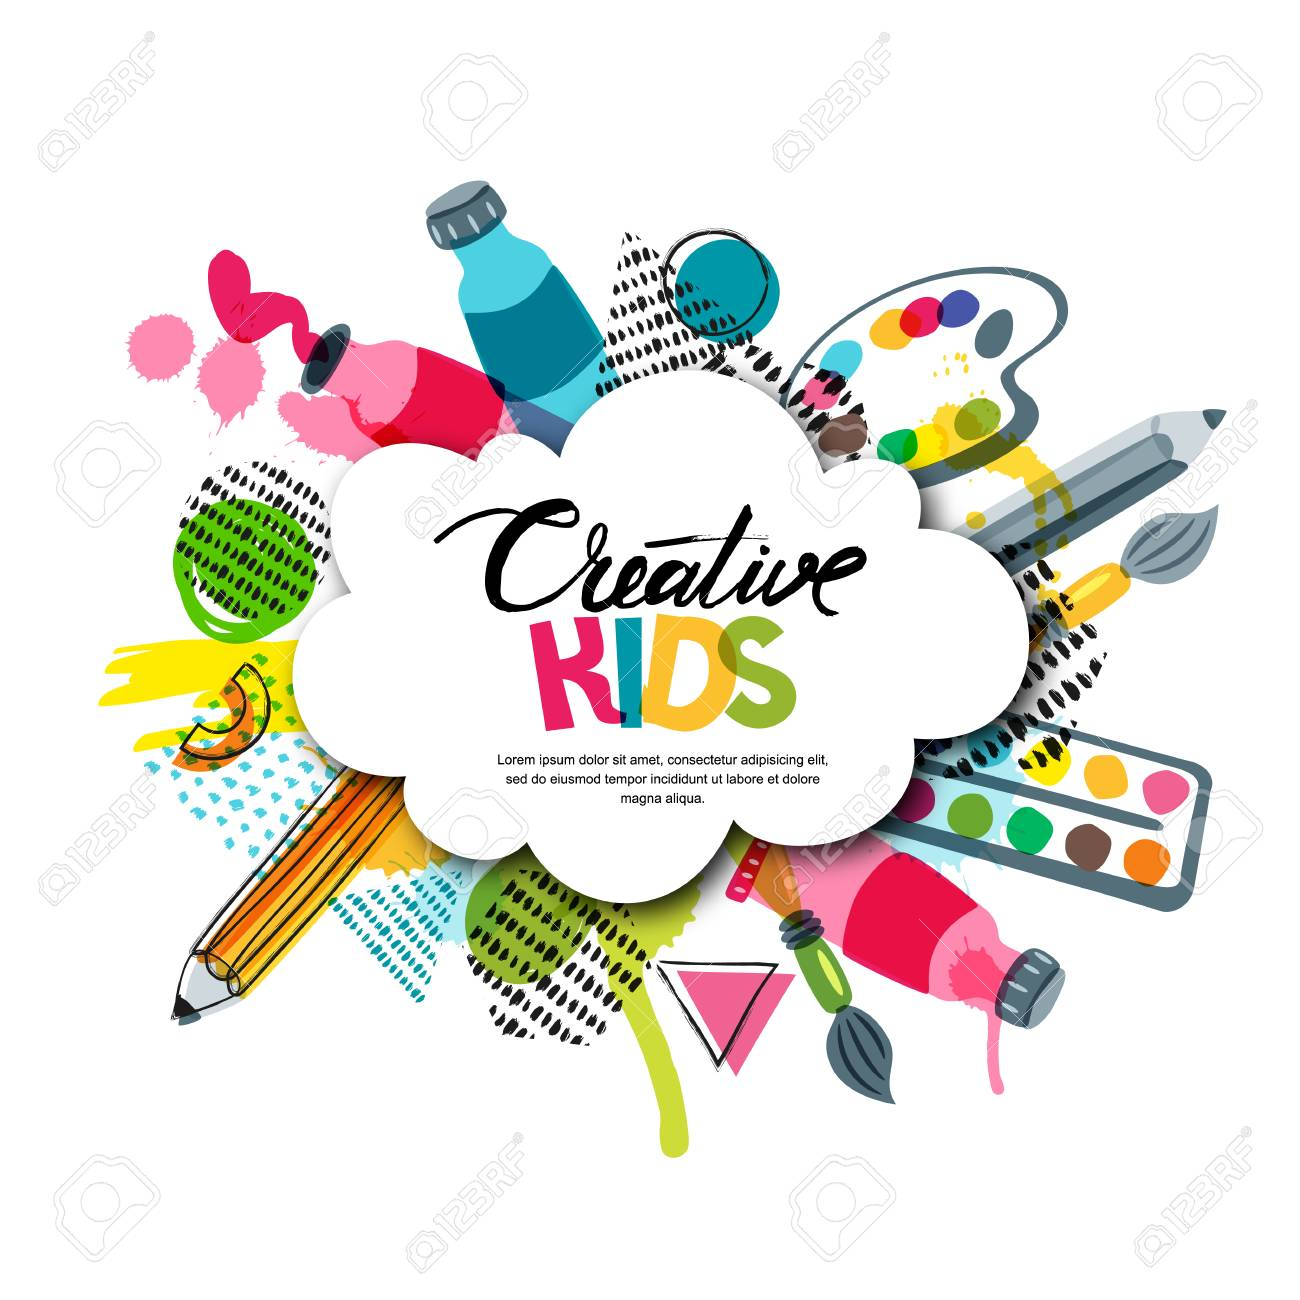 Kids Art Craft Education Creativity Class Concept Vector Banner